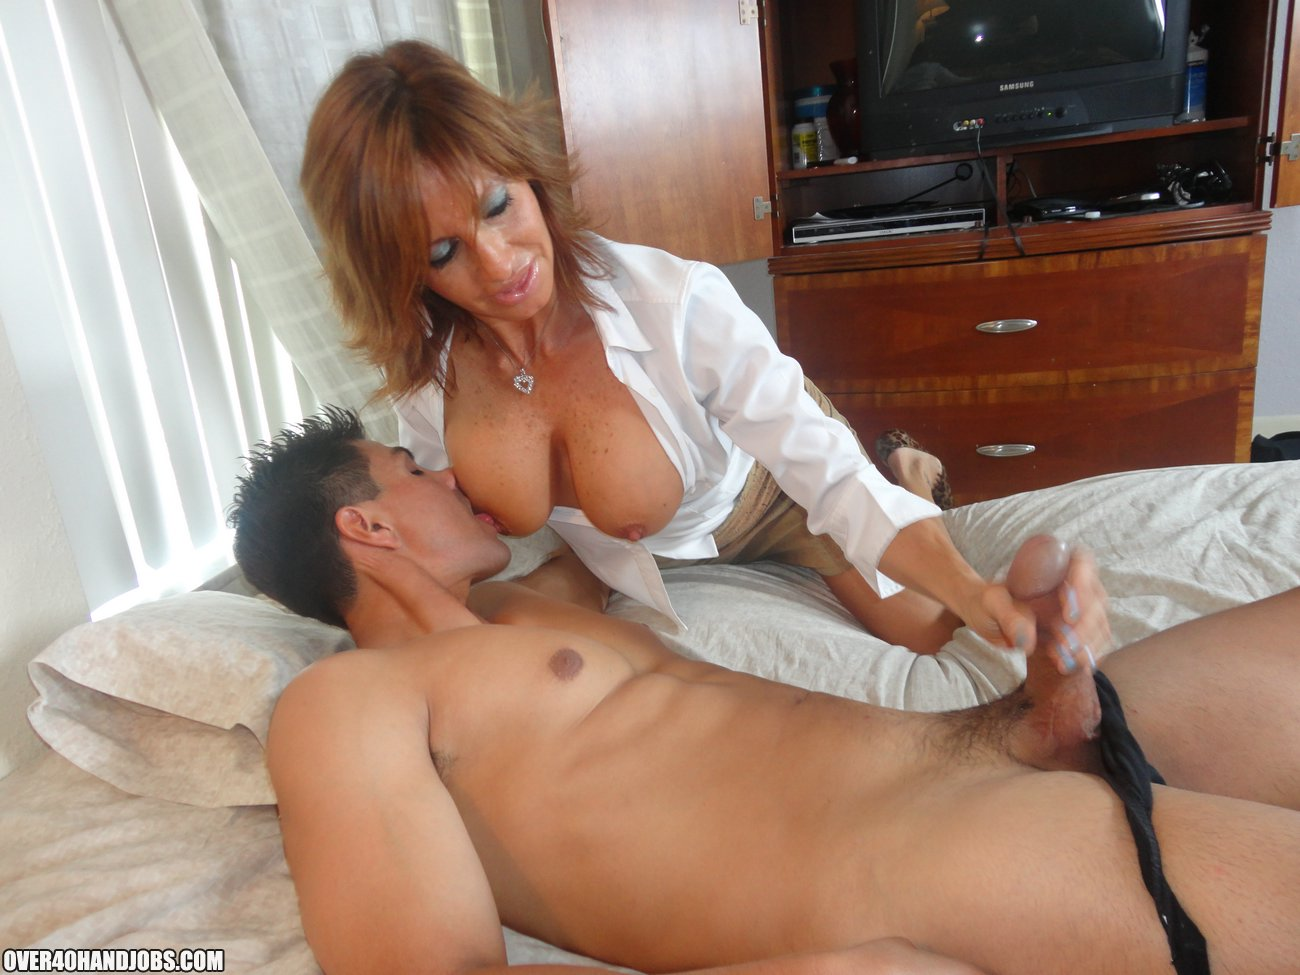 You are Milf big cock handjob remarkable